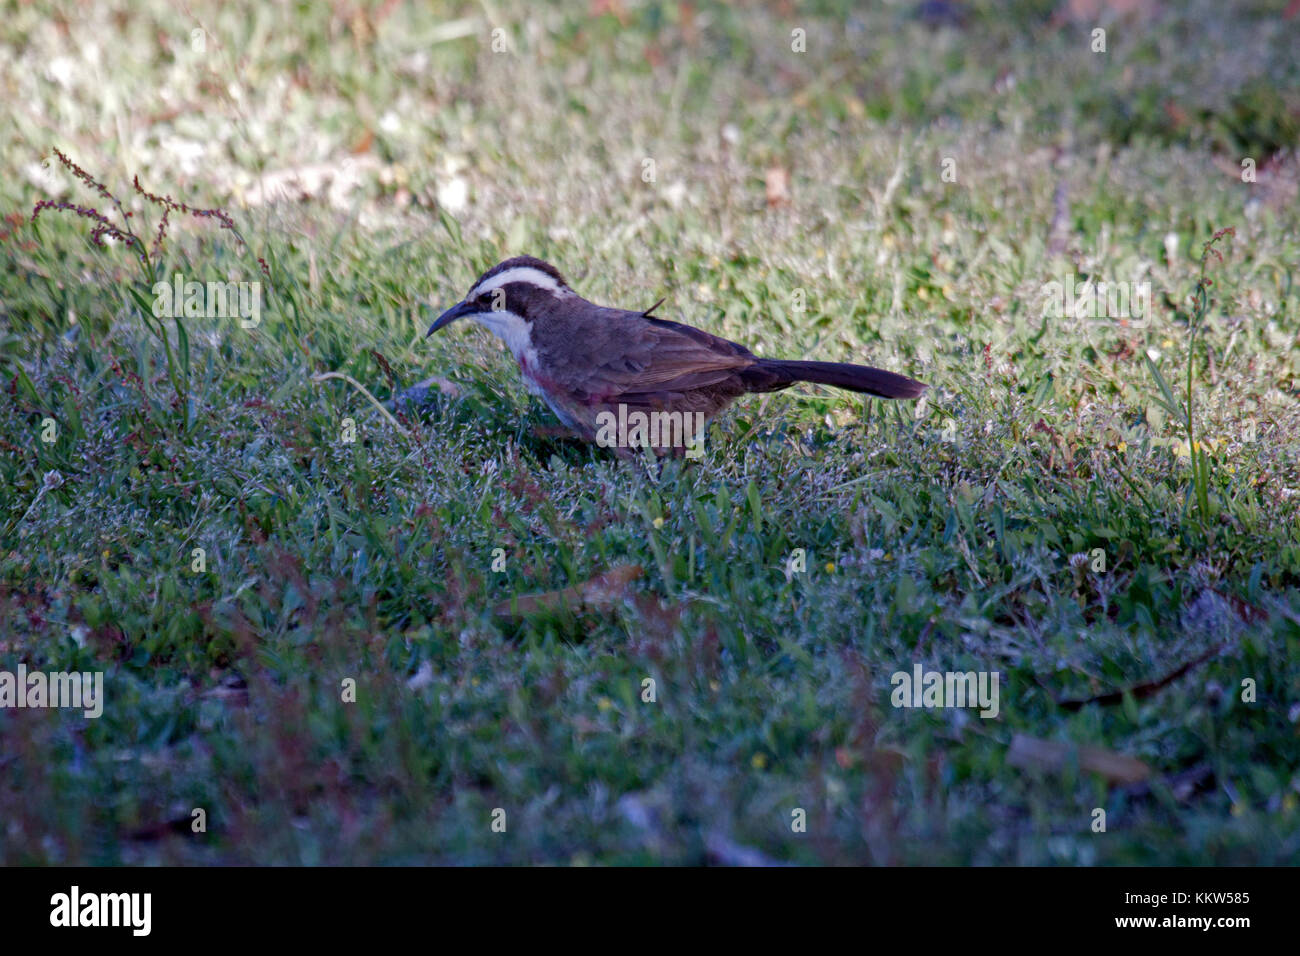 White browed babbler foraging in shade of nearby bushes in Grampians NP Victoria Australia - Stock Image